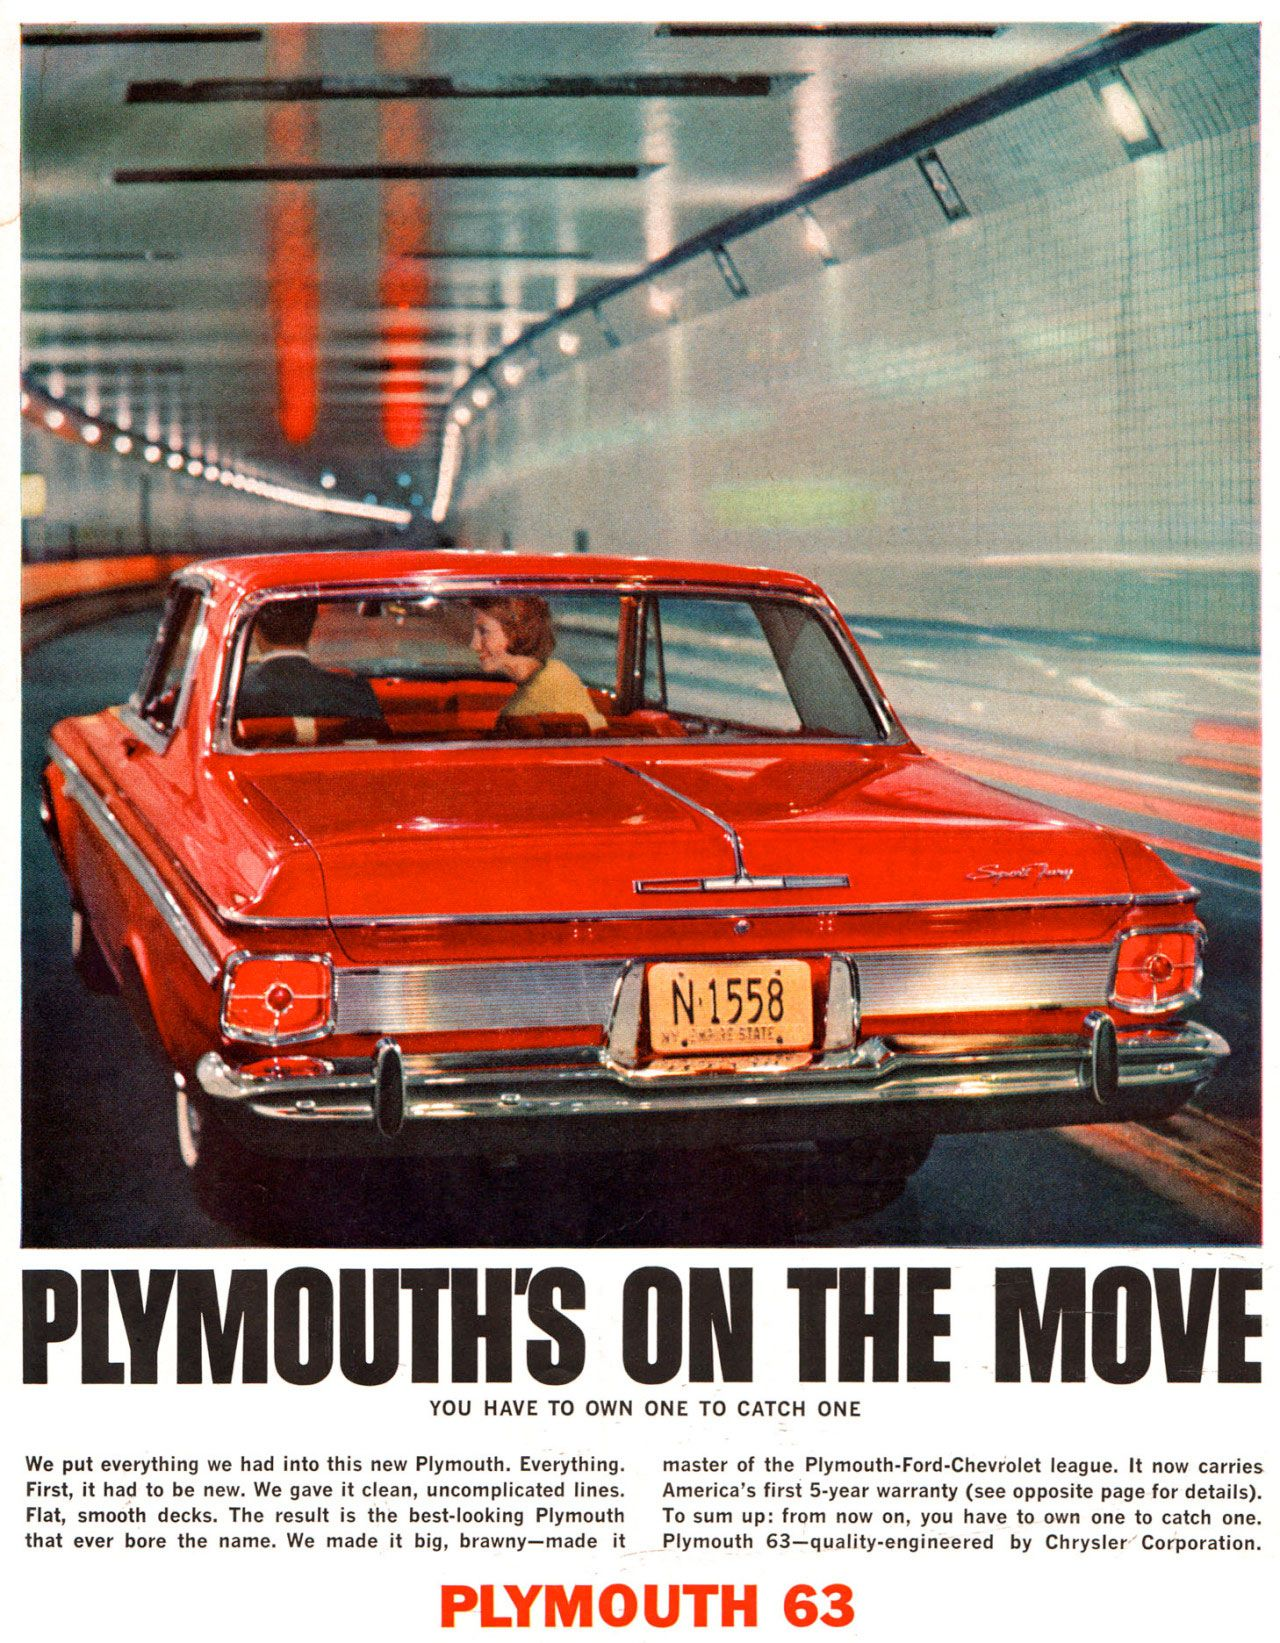 Plymouth's on the move. You have to own one to catch one. We put everything we had into this new Plymouth. Everything. master of the Plymouth-Ford-Chevrolet league. It now carries First, it had to be new. We gave it clean, uncomplicated lines. America's first 5-year warranty (see opposite page for details). Flat, smooth decks. The result is the best-looking Plymouth To sum up: from now on. you have to own one to catch one. that ever bore the name. We made it big, brawny—made it Plymouth 63—quality-engineered by Chrysler Corporation.